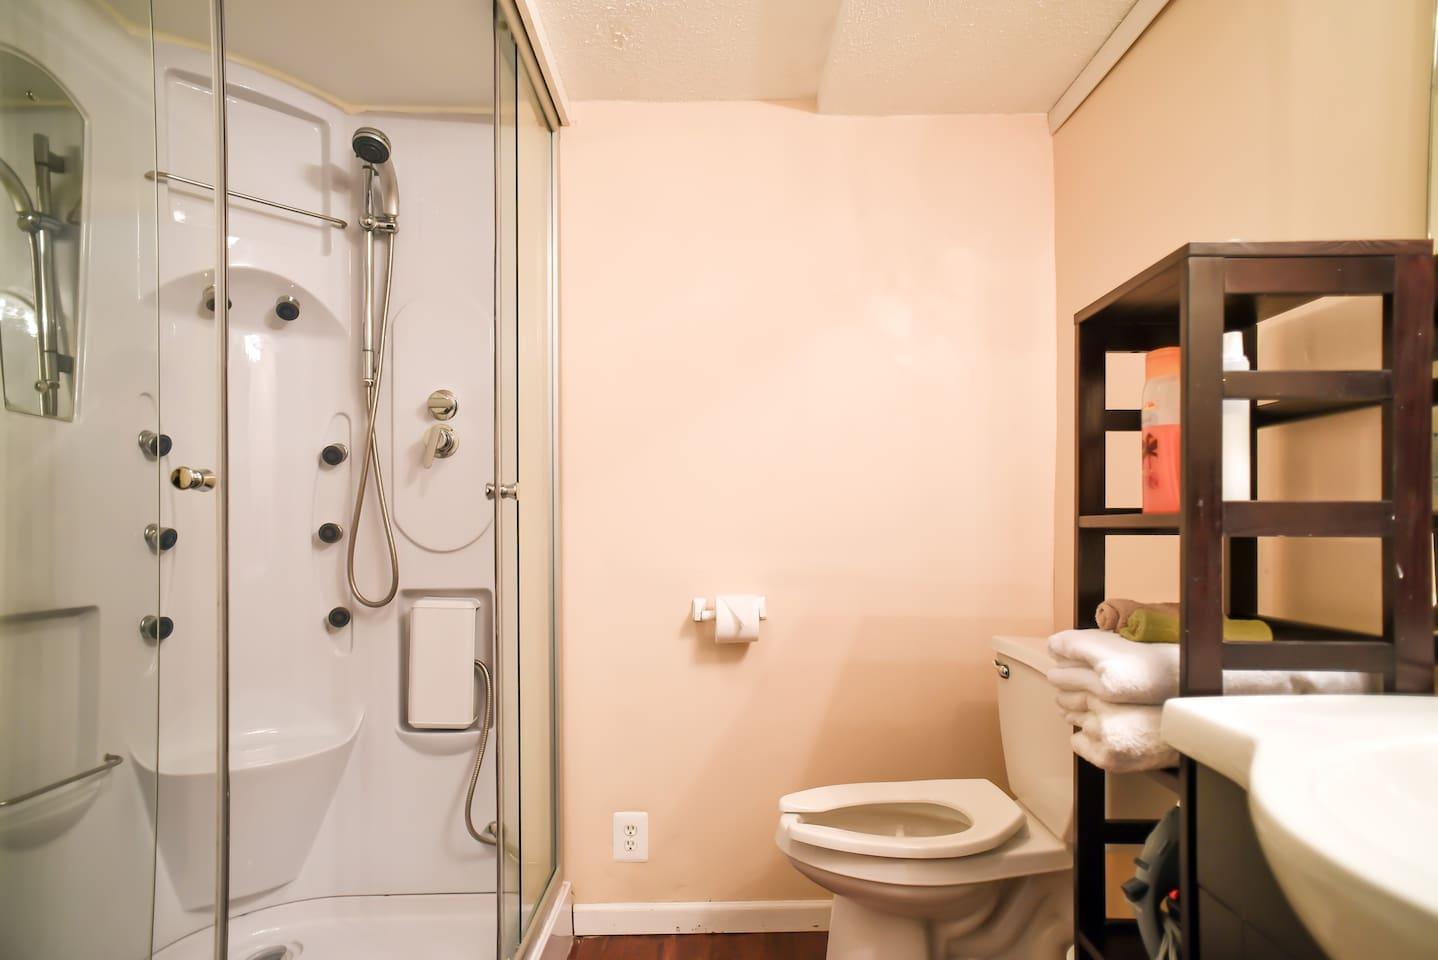 You won't believe this shower! Very nice and relaxing, multi-head shower with a foot massager in your private bathroom!